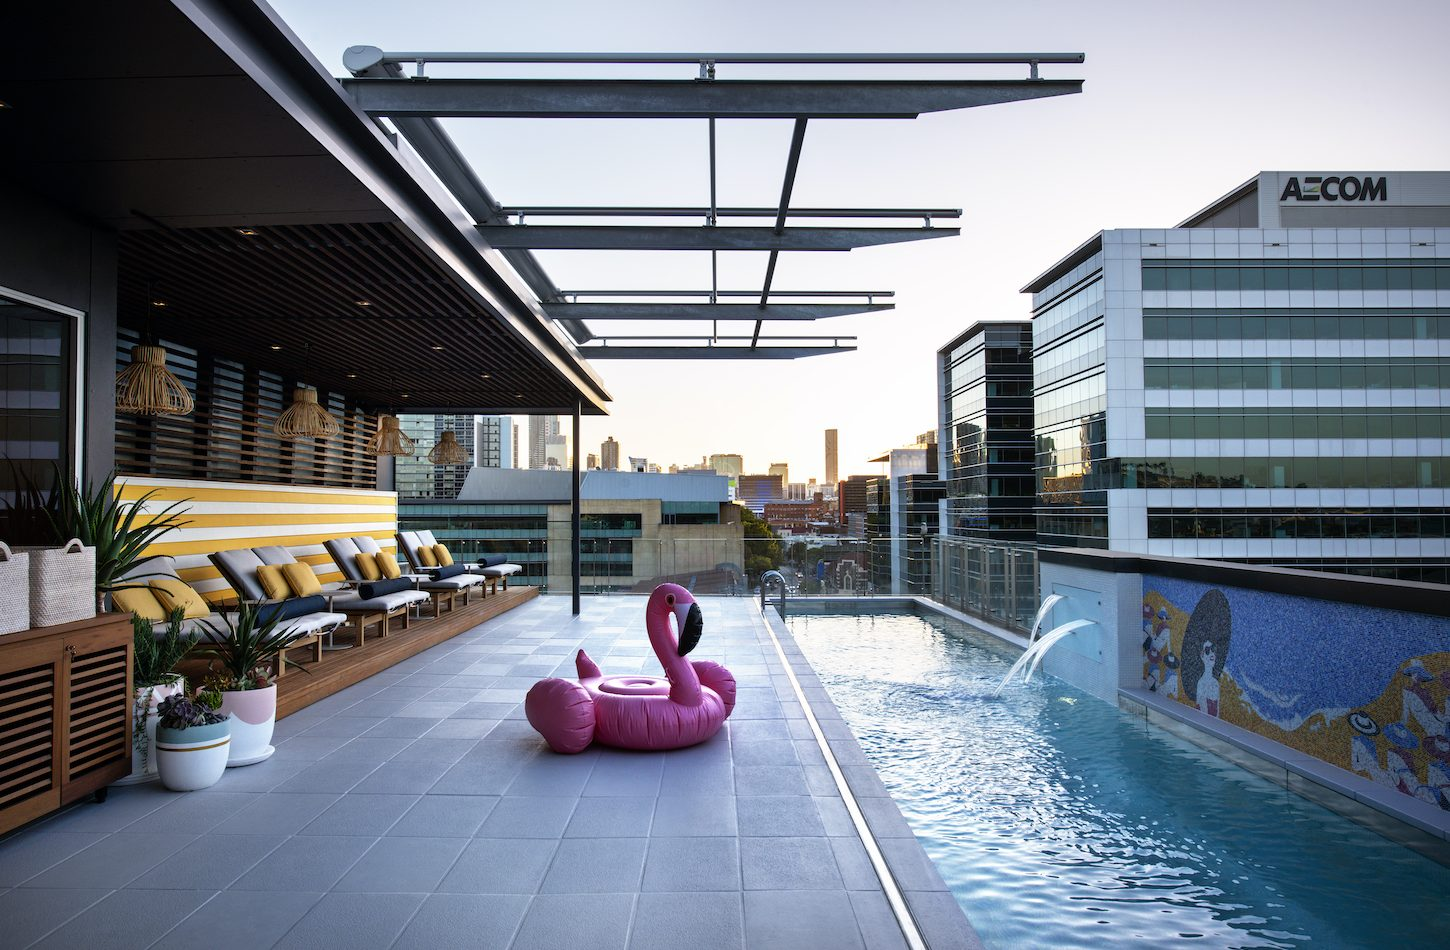 Ovolo The Valley rooftop